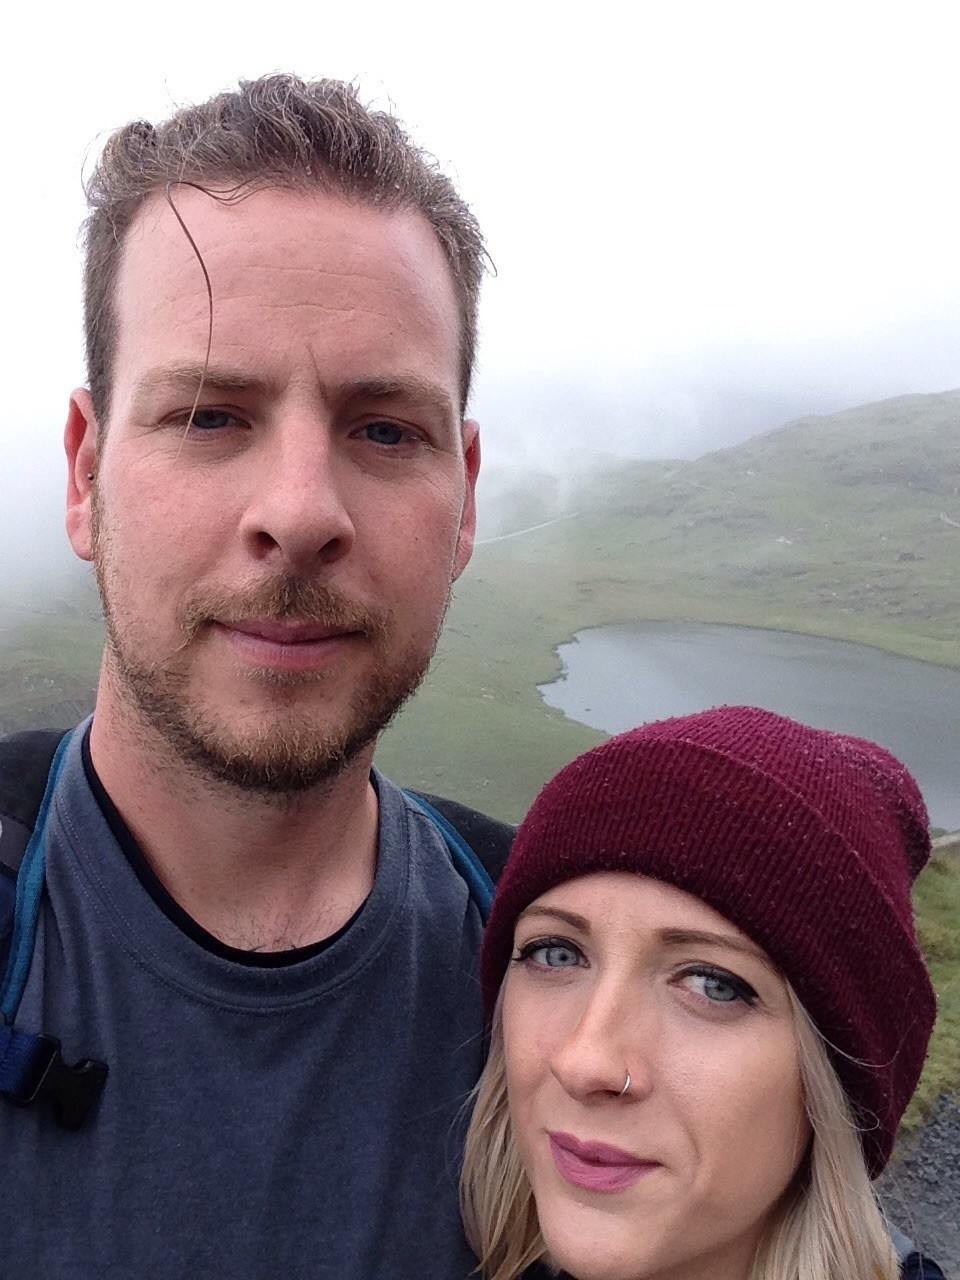 Image 1 of Anneka and Stephen